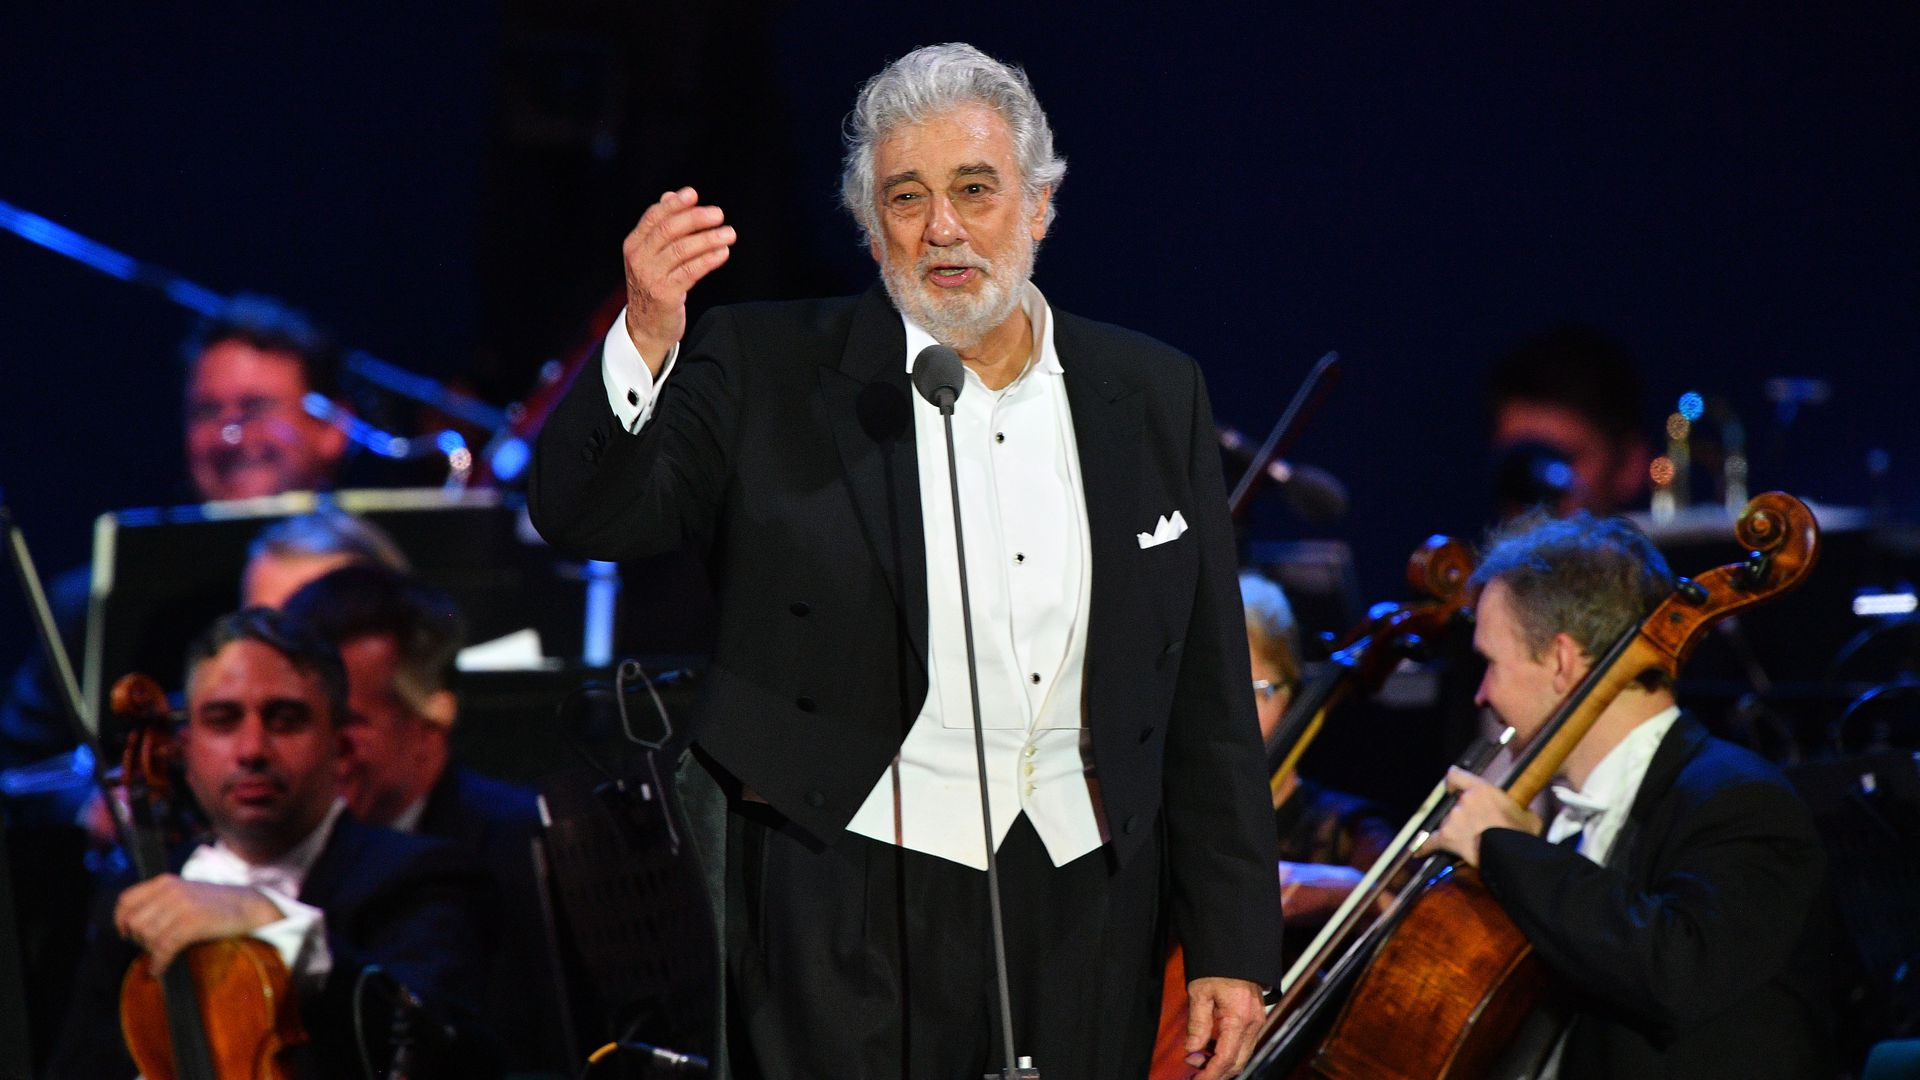 Spanish tenor Placido Domingo gestures as he performs during his concert in the newly inaugurated sports and culture centre 'St Gellert Forum' in Szeged, southern Hungary